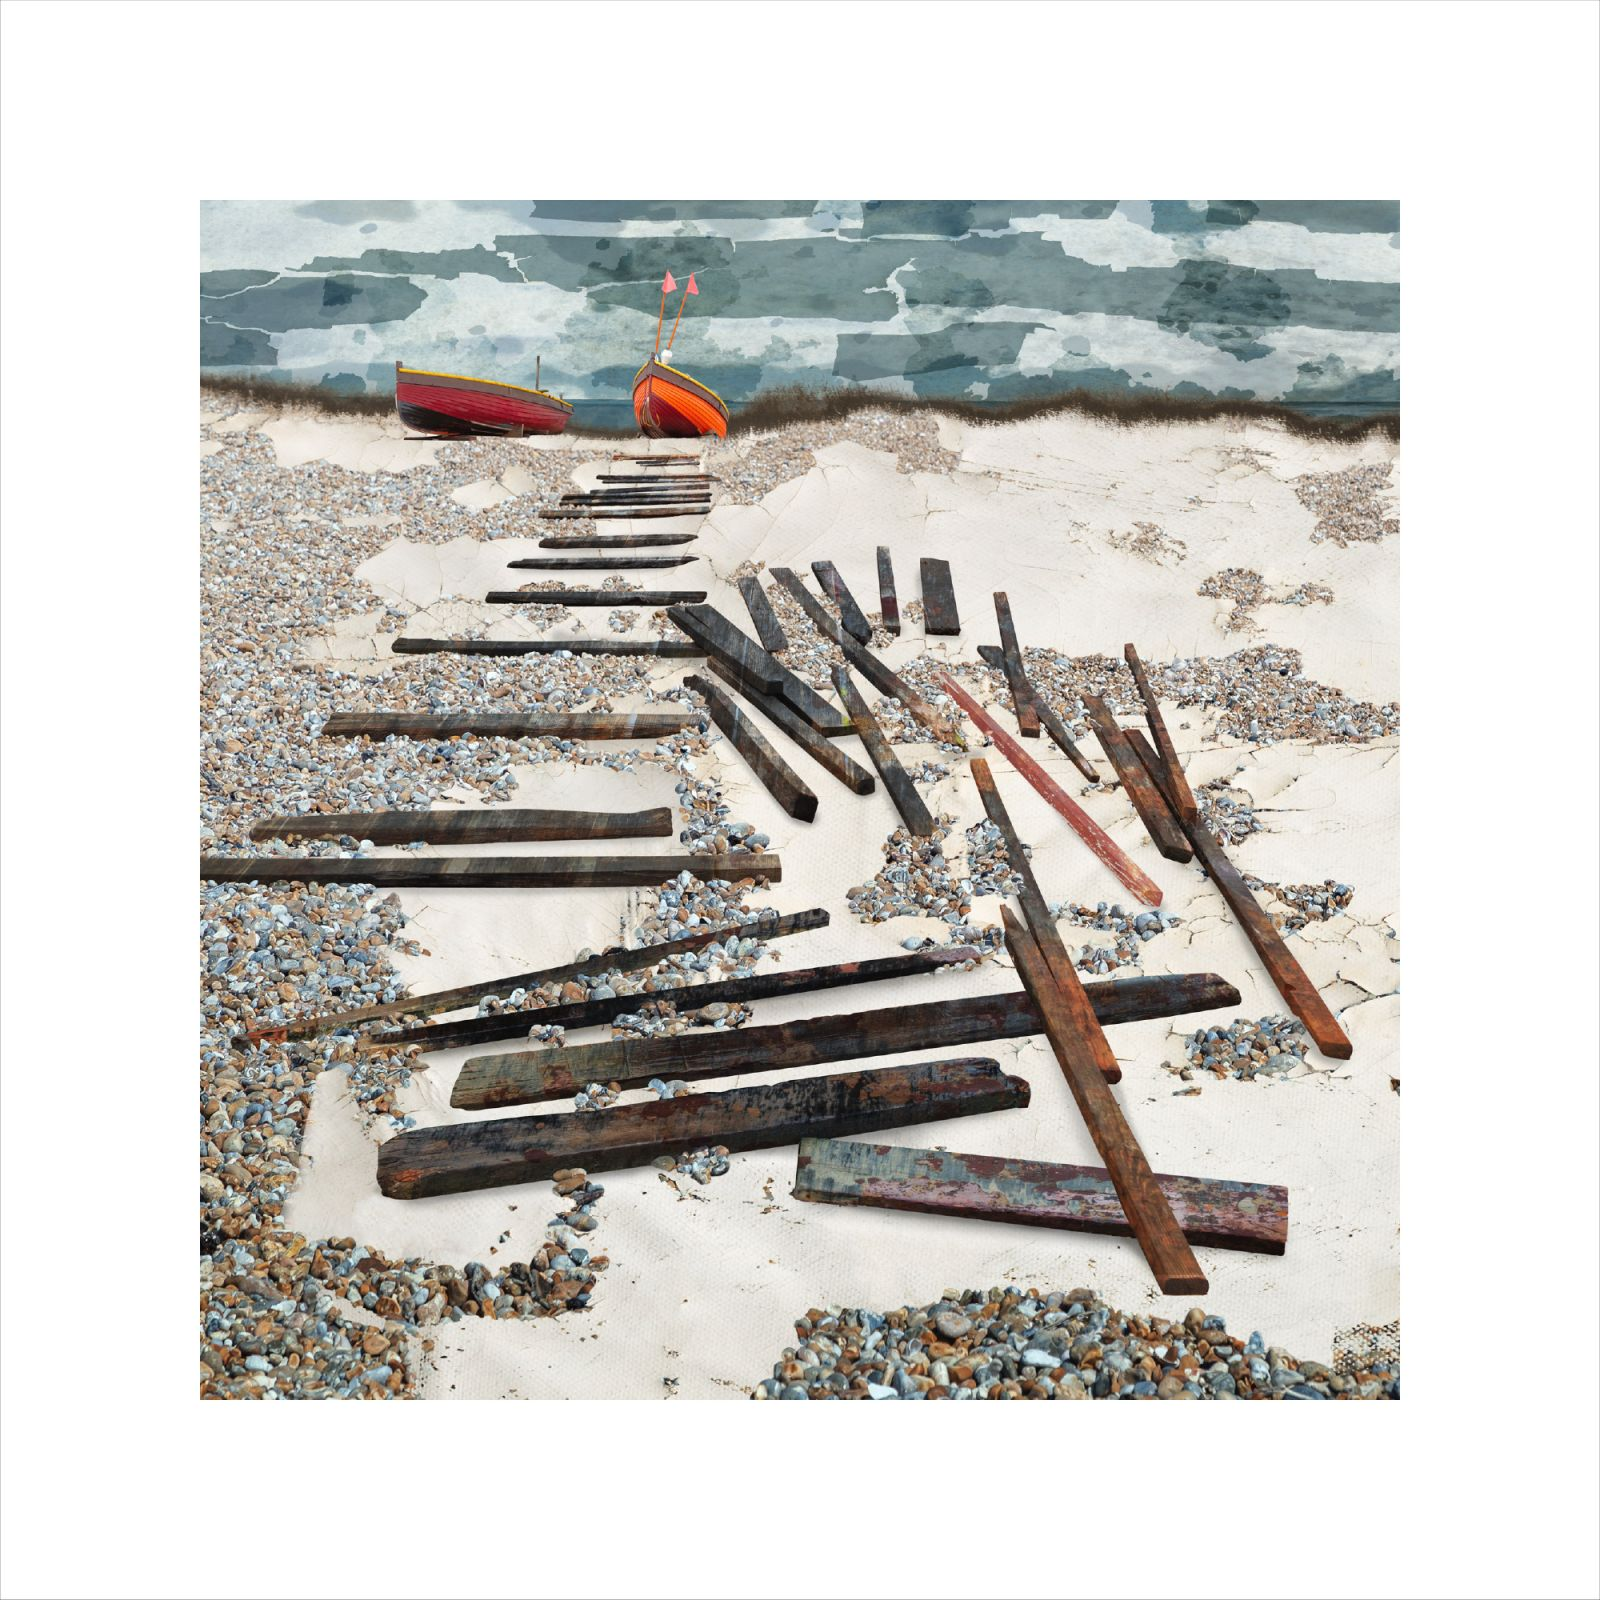 Claire Gill Artist, Digital collage artist, British Artist, digital collage artist, photomontage artist, worthing beach, the broken path, seascape print, limited edition print, fine art prints for sale, sussex coast print, Worthing fine art print, red boats, seascape artist, Seascape art